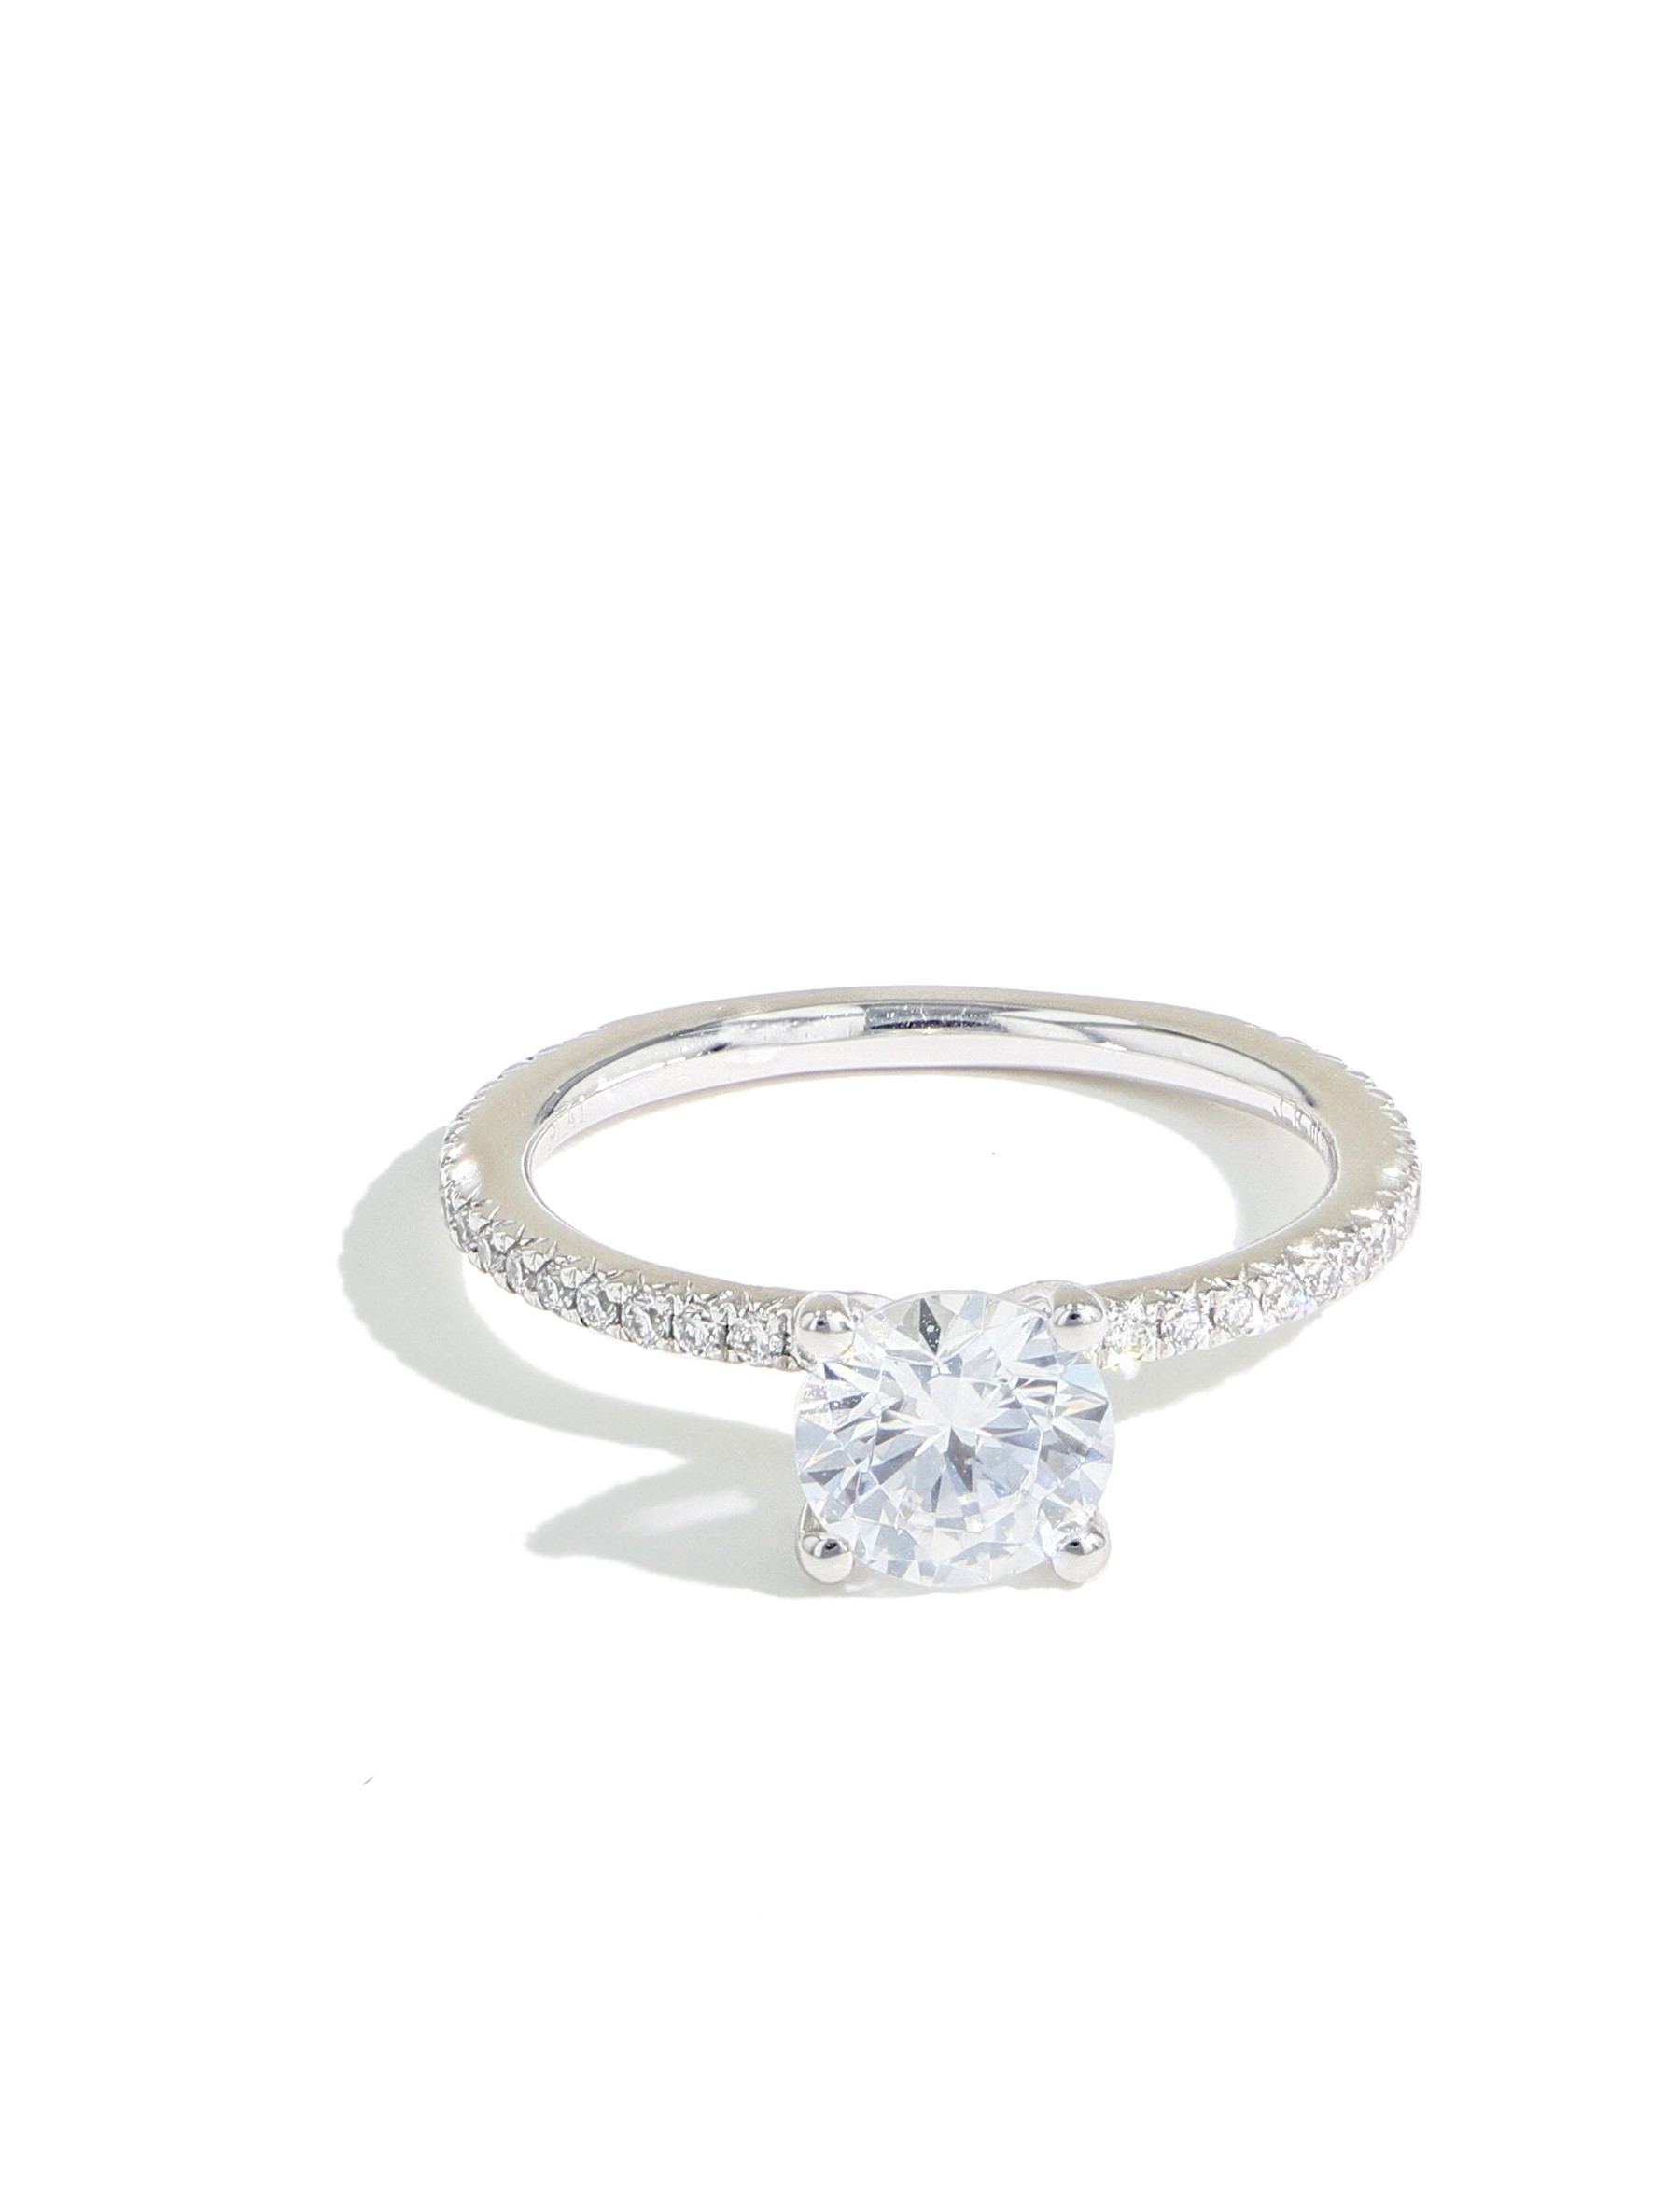 The Round Solitaire Pave Engagement Ring in Platinum front view